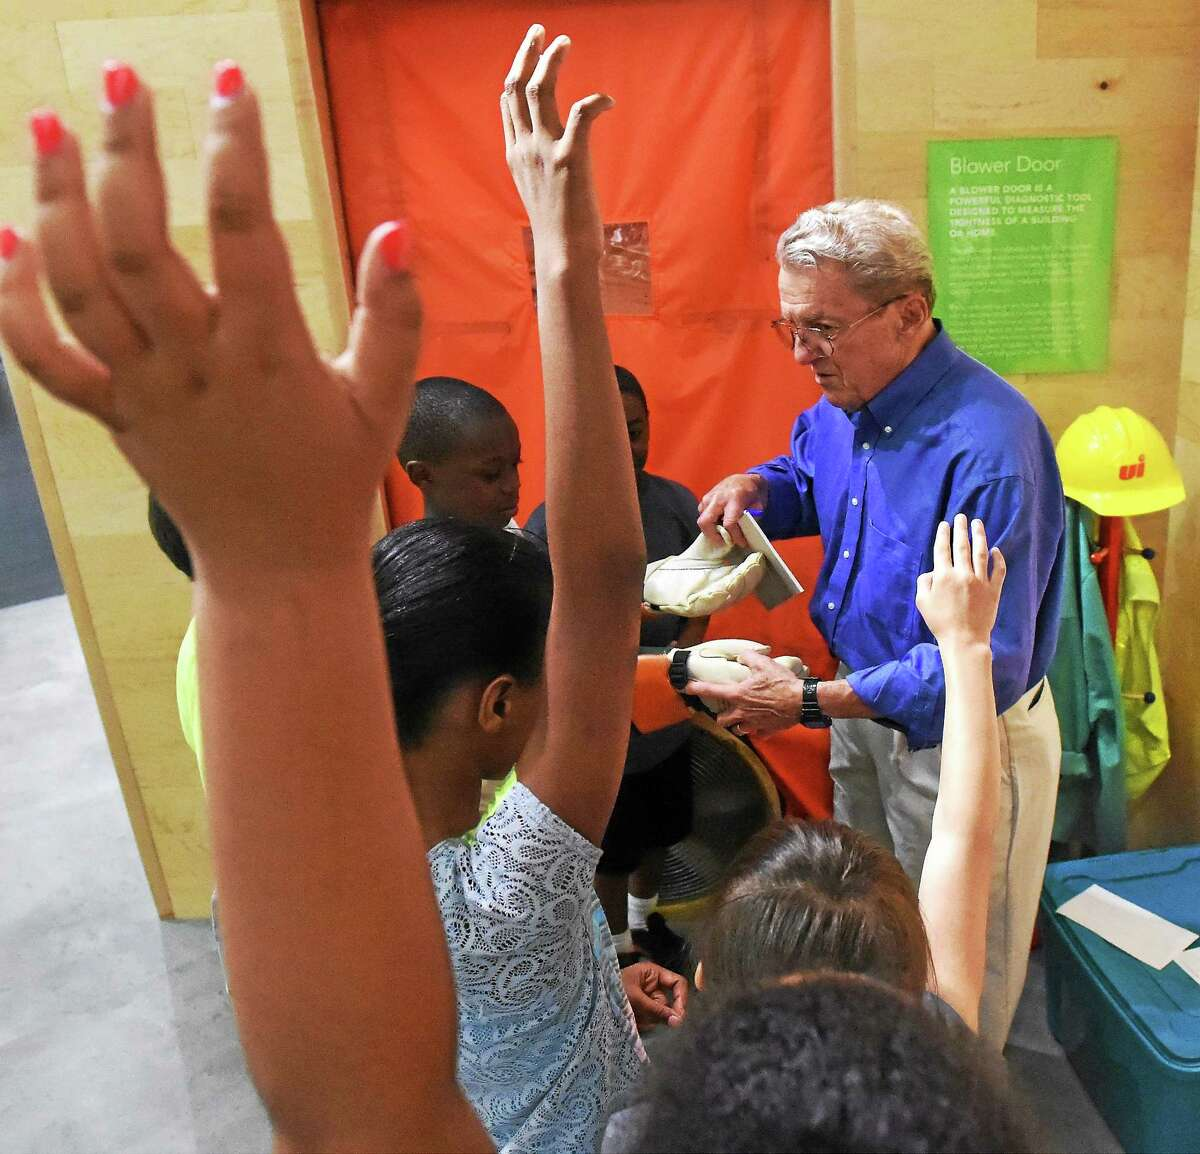 Ernie Price, an educator at the Energize Connecticut Center in North Haven, gives a short talk on safety around utility poles, downed wires and the job of an electric utility lineman to children from ACES.